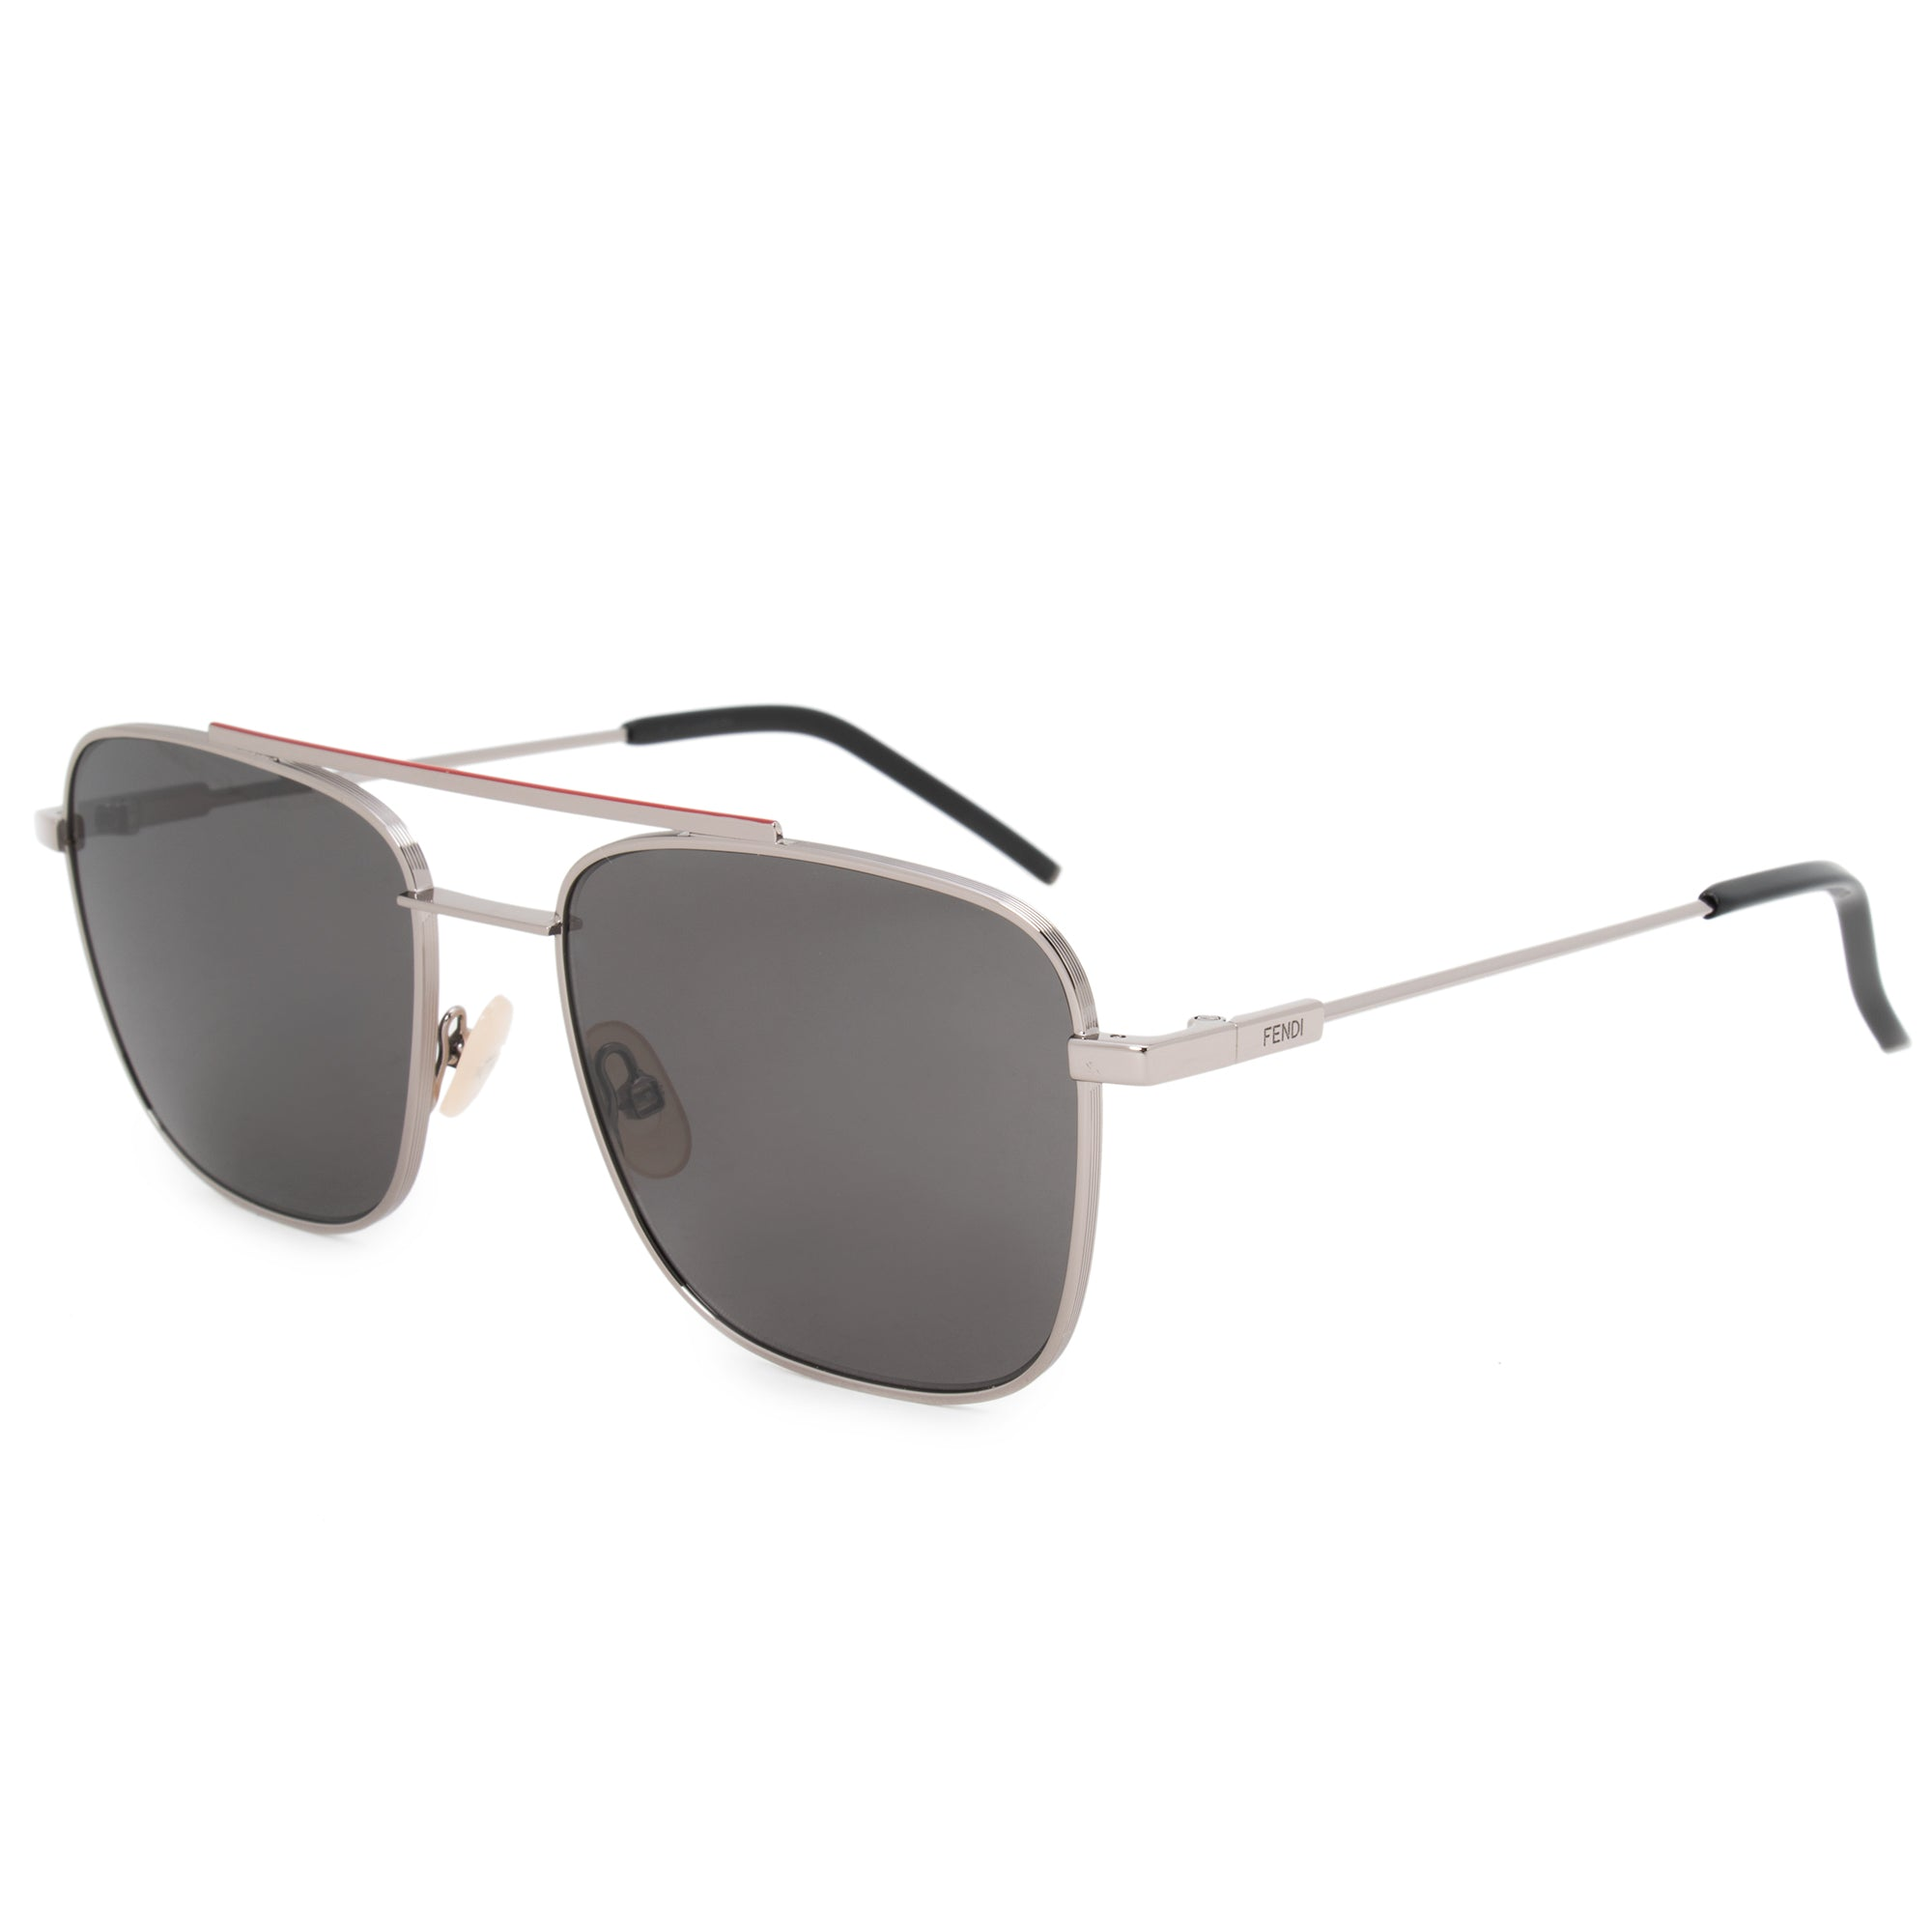 Fendi Square Sunglasses FFM008S KJ1 M9 55 Polarized